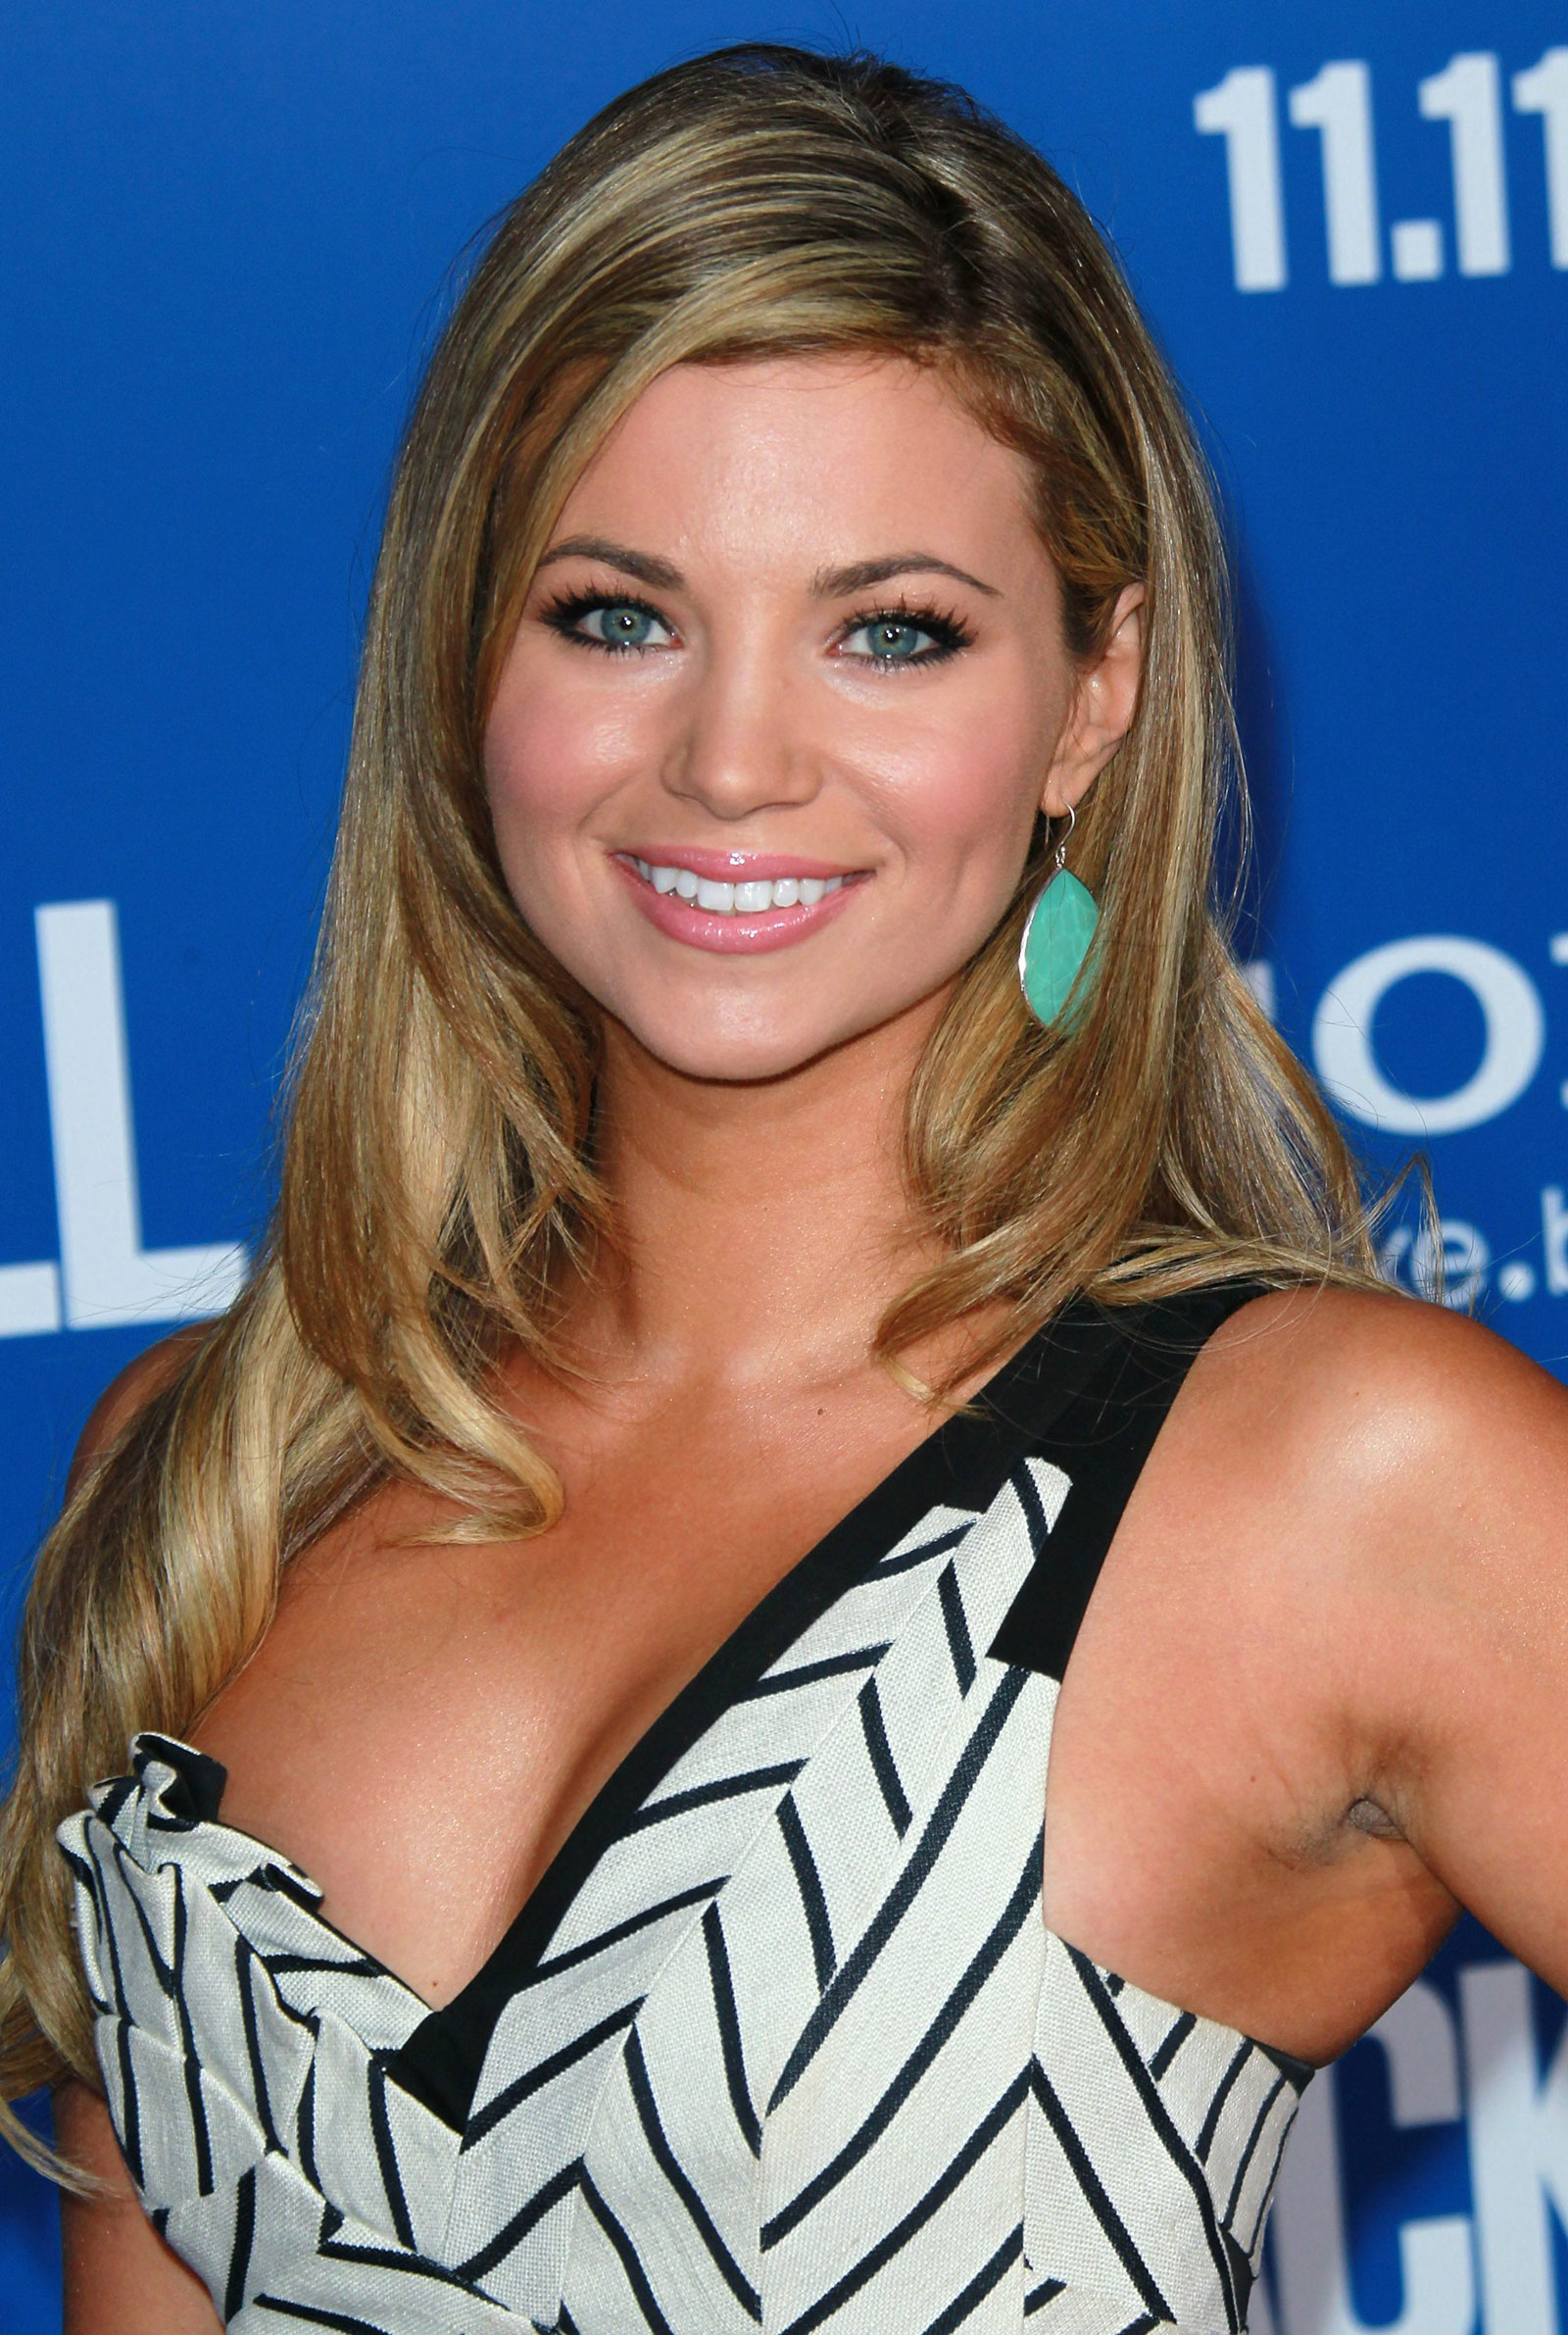 Amber Lancaster From The Price Is Right amber lancaster at jack and jill premiere in los angeles